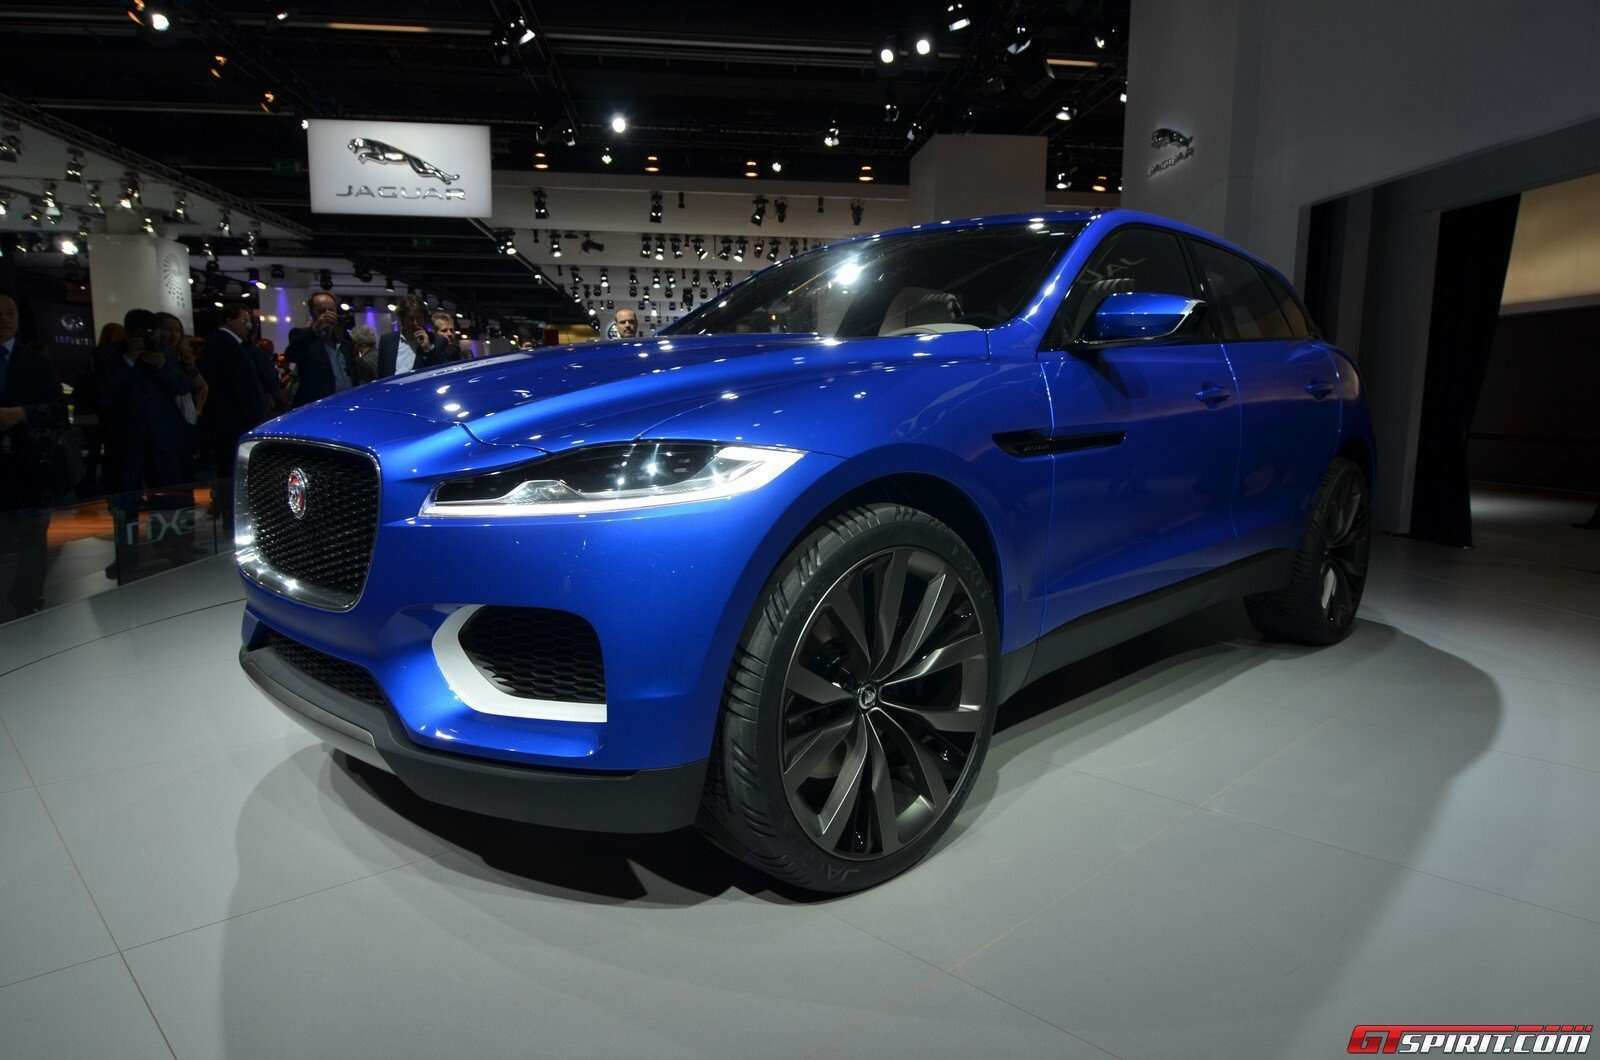 94 New 2019 Jaguar C X17 Crossover Model